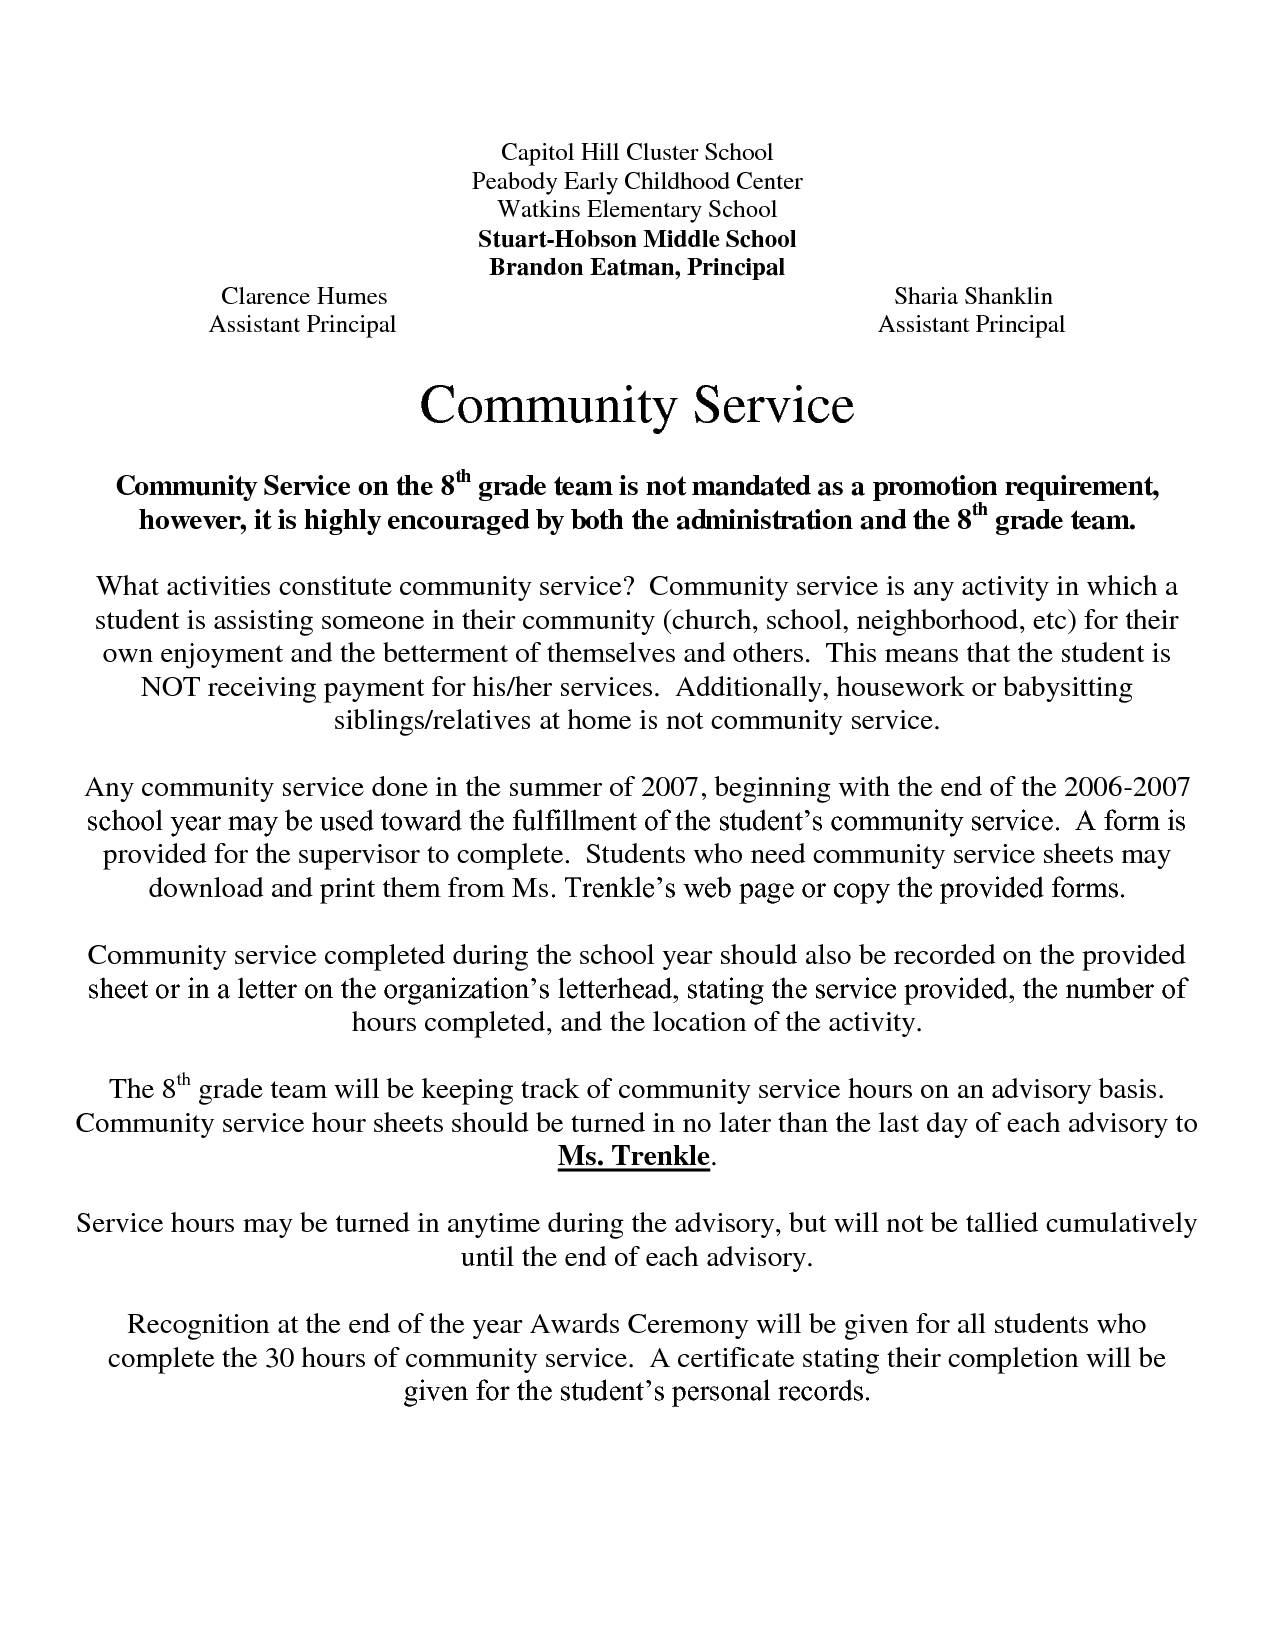 Court ordered Community Service Letter Template - 25 Munity Service Pletion Letter to Court Template Sample